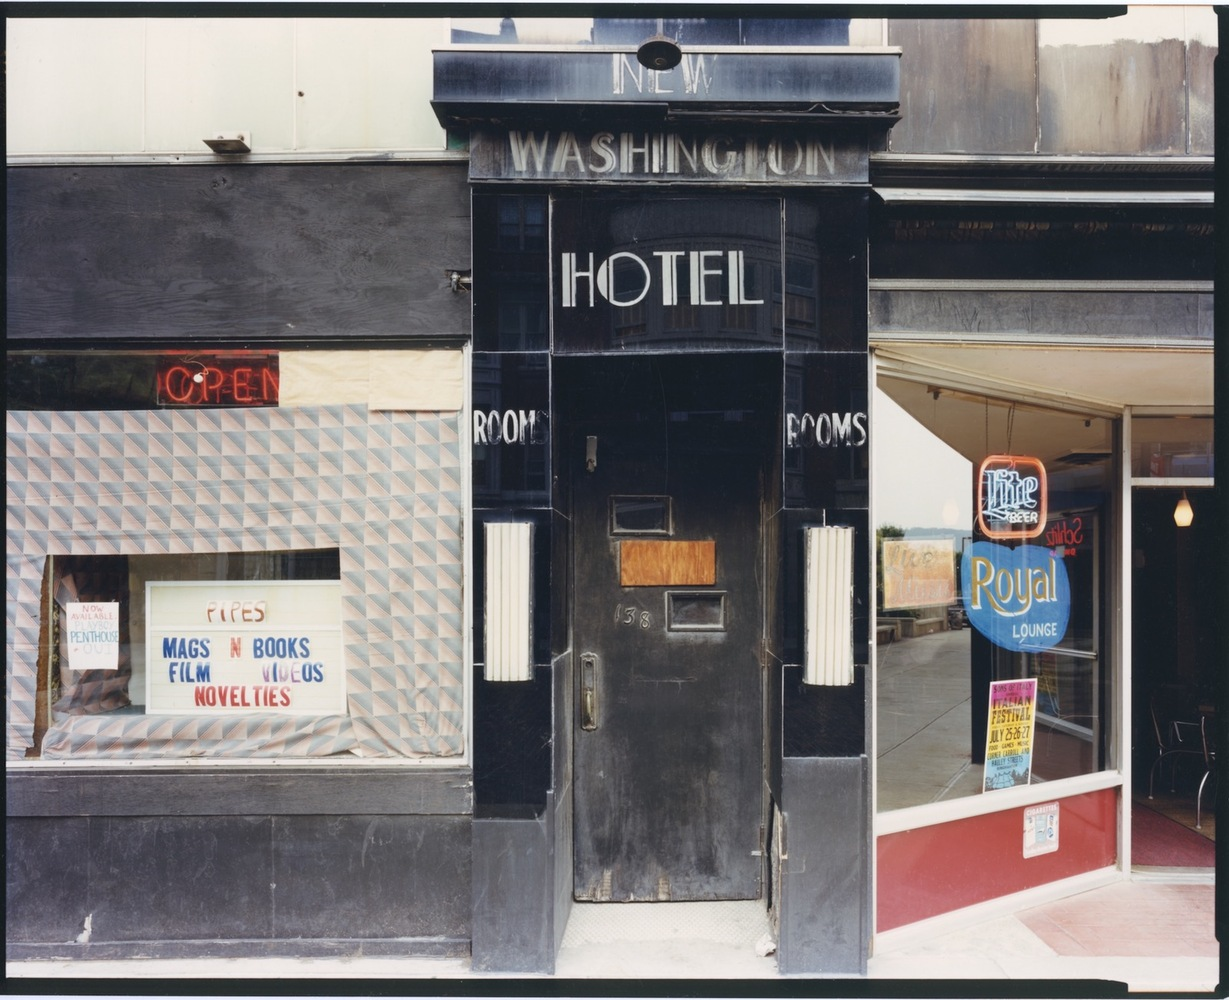 New Washington Hotel, Binghamton, NY, c. 1986